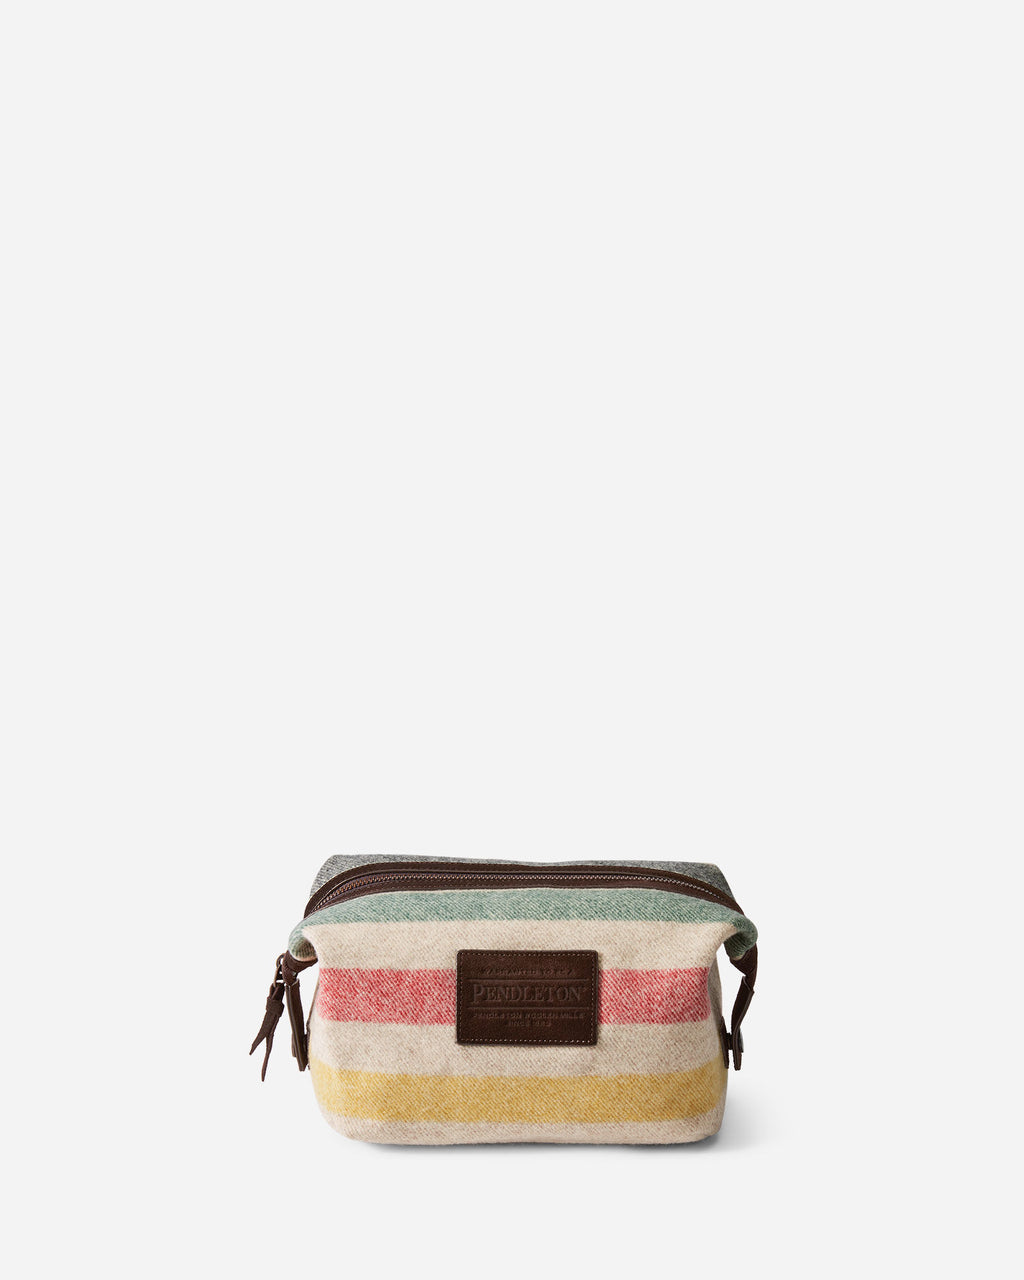 Pendleton: Essential Pouch